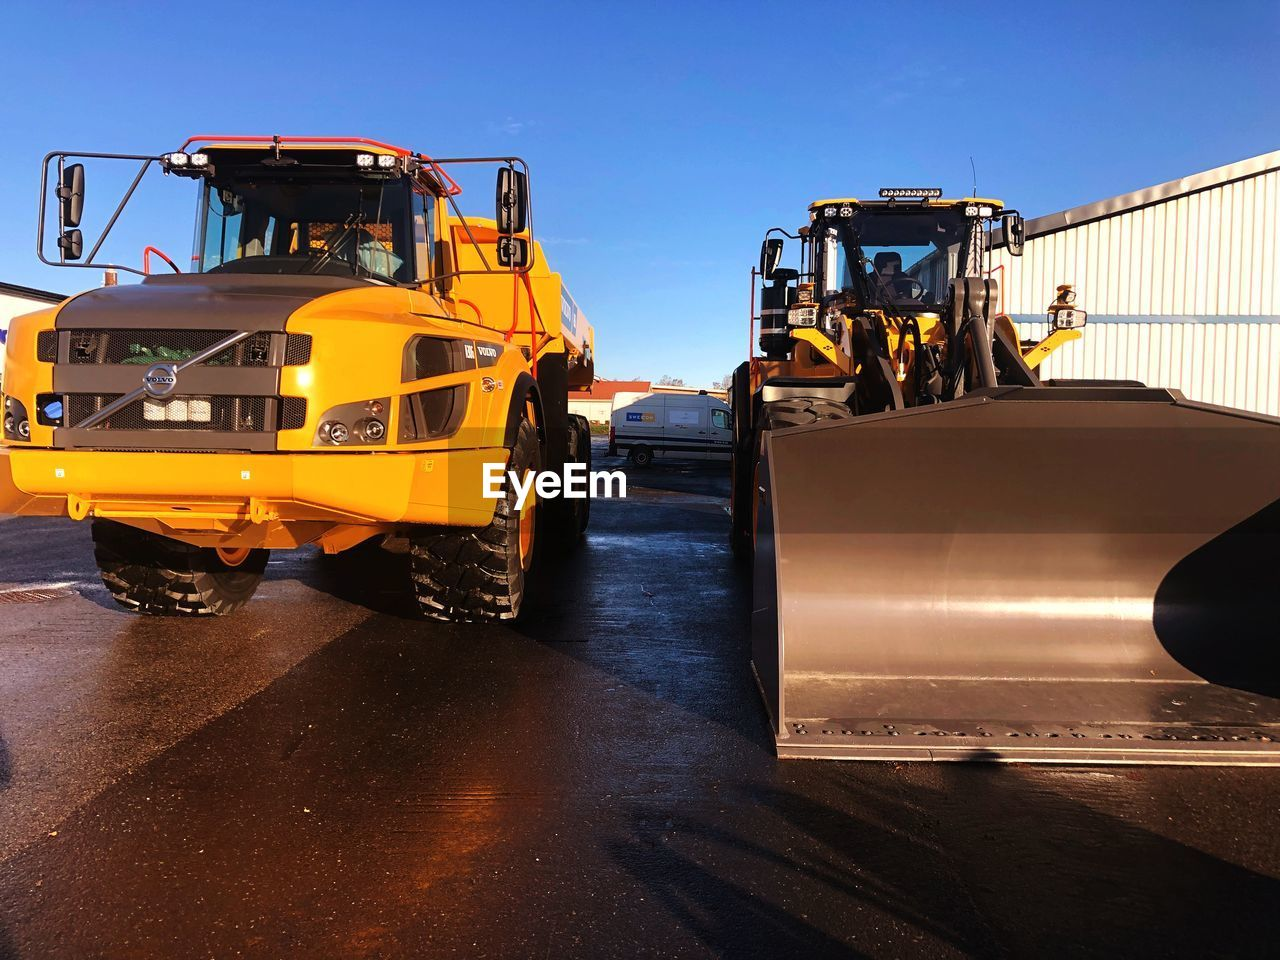 land vehicle, transportation, mode of transportation, machinery, industry, construction industry, sky, construction machinery, road, yellow, commercial land vehicle, construction site, development, clear sky, outdoors, nature, motor vehicle, sunlight, bulldozer, equipment, construction equipment, industrial equipment